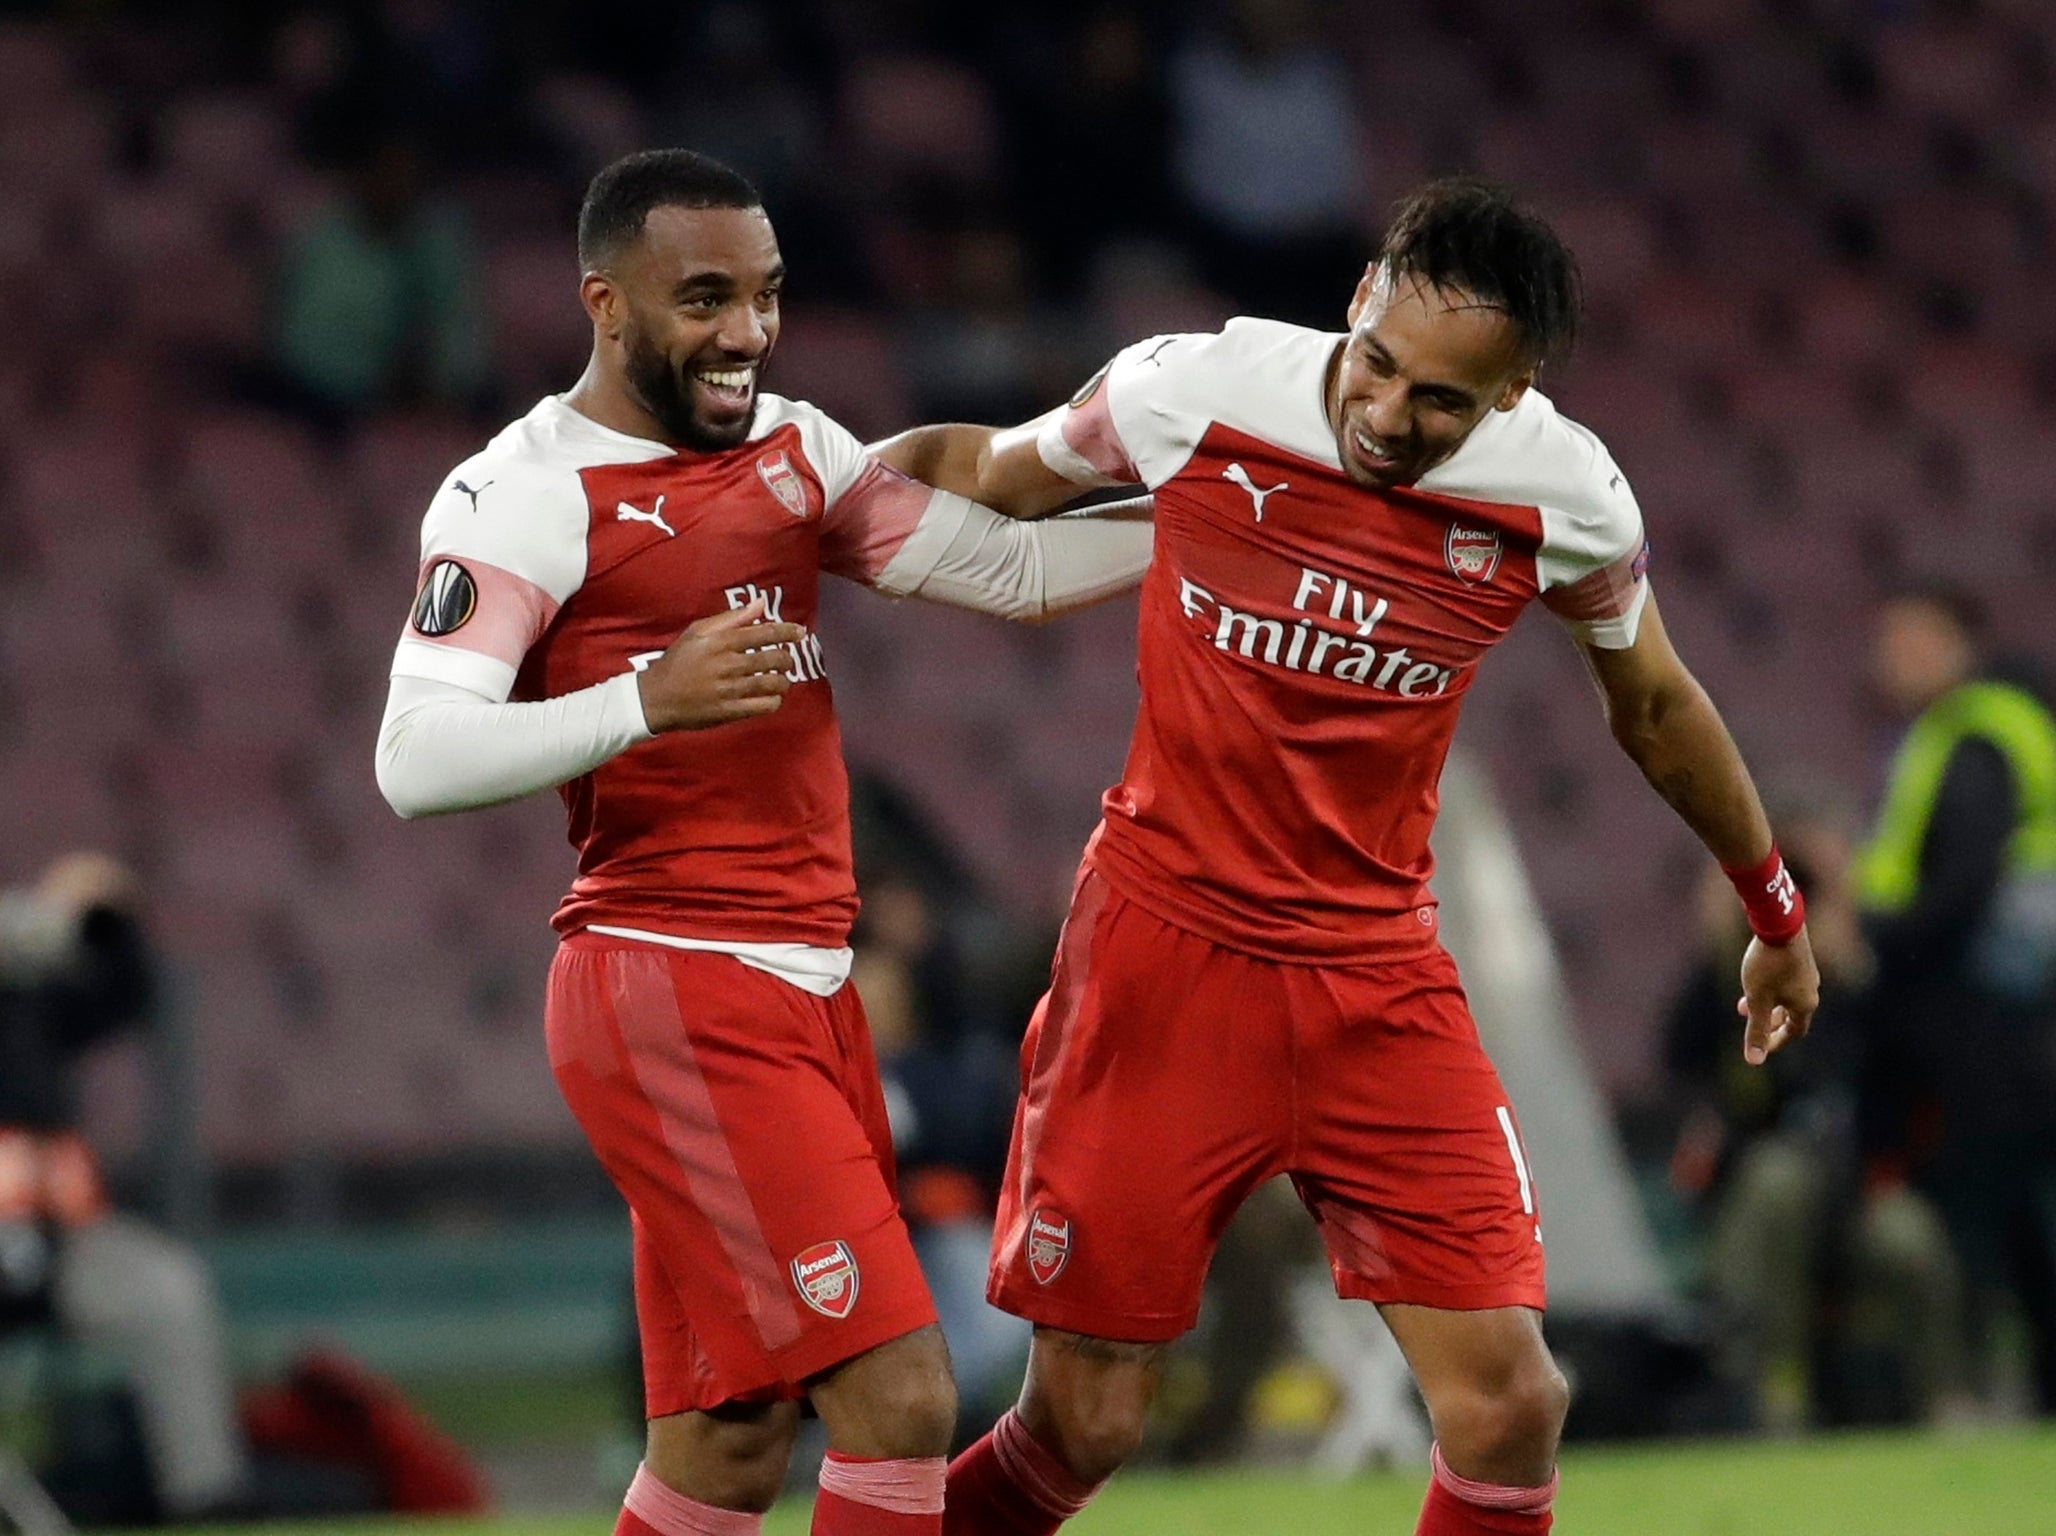 Napoli vs Arsenal player ratings: Alexandre Lacazette and Pierre-Emerick Aubameyang impress in win